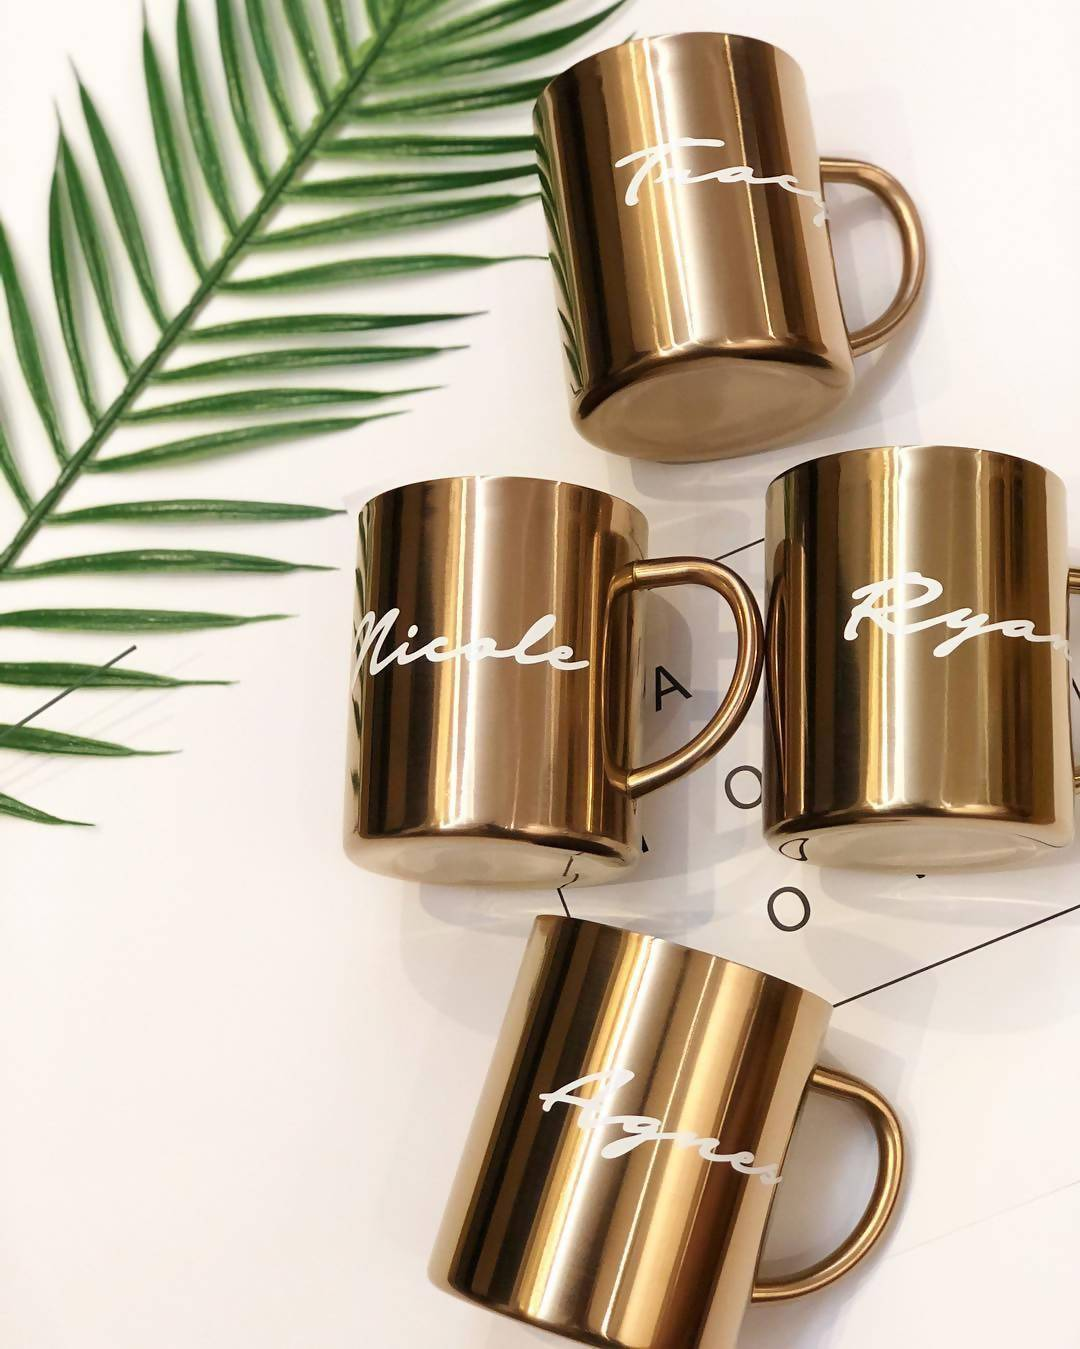 Personalised Industrial-Chic Stainless Steel Mug - Personalised Mugs - KAYSE - Naiise